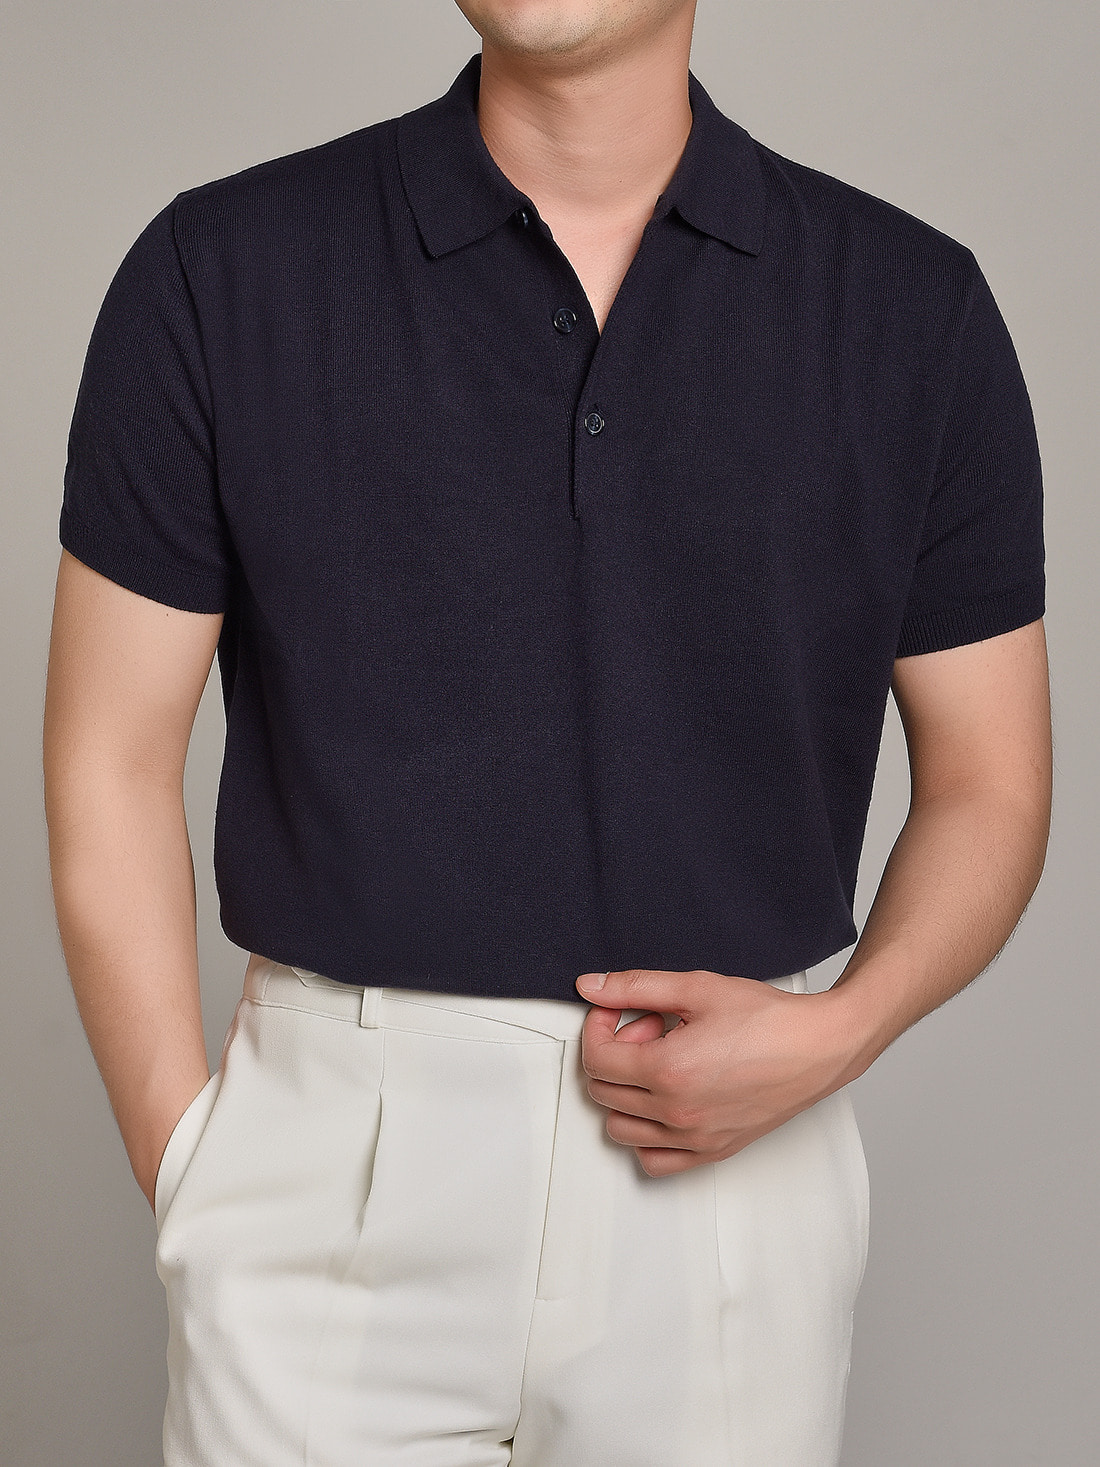 DEVERMAN[DEVERMAN]soft touch solid polo knit (navy)